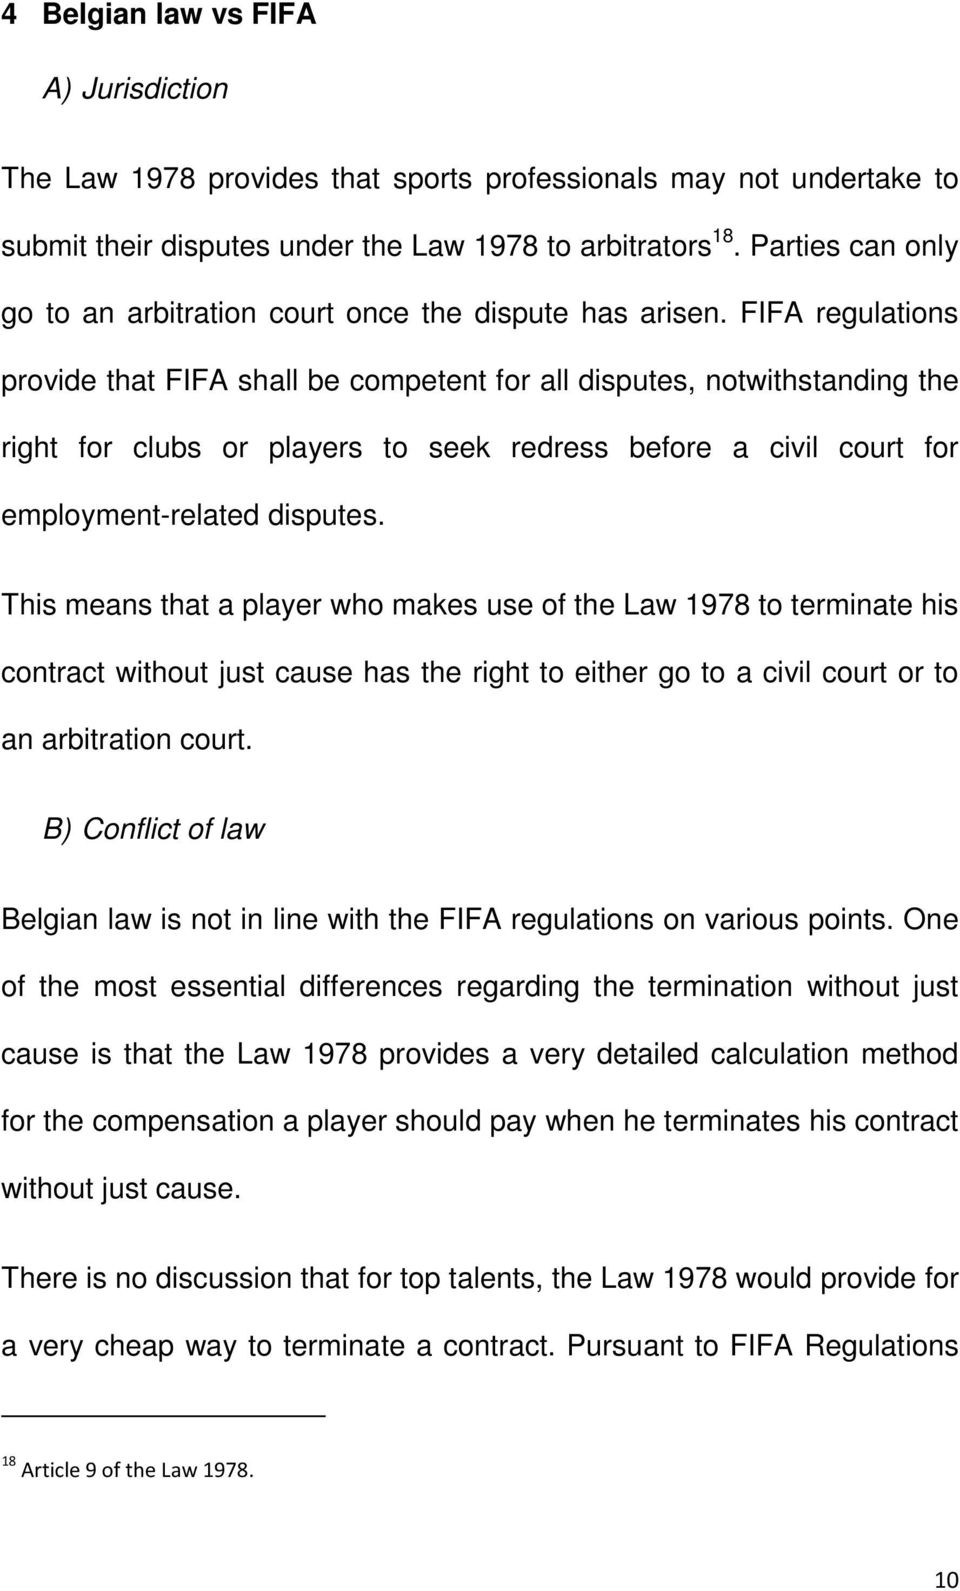 FIFA regulations provide that FIFA shall be competent for all disputes, notwithstanding the right for clubs or players to seek redress before a civil court for employment-related disputes.